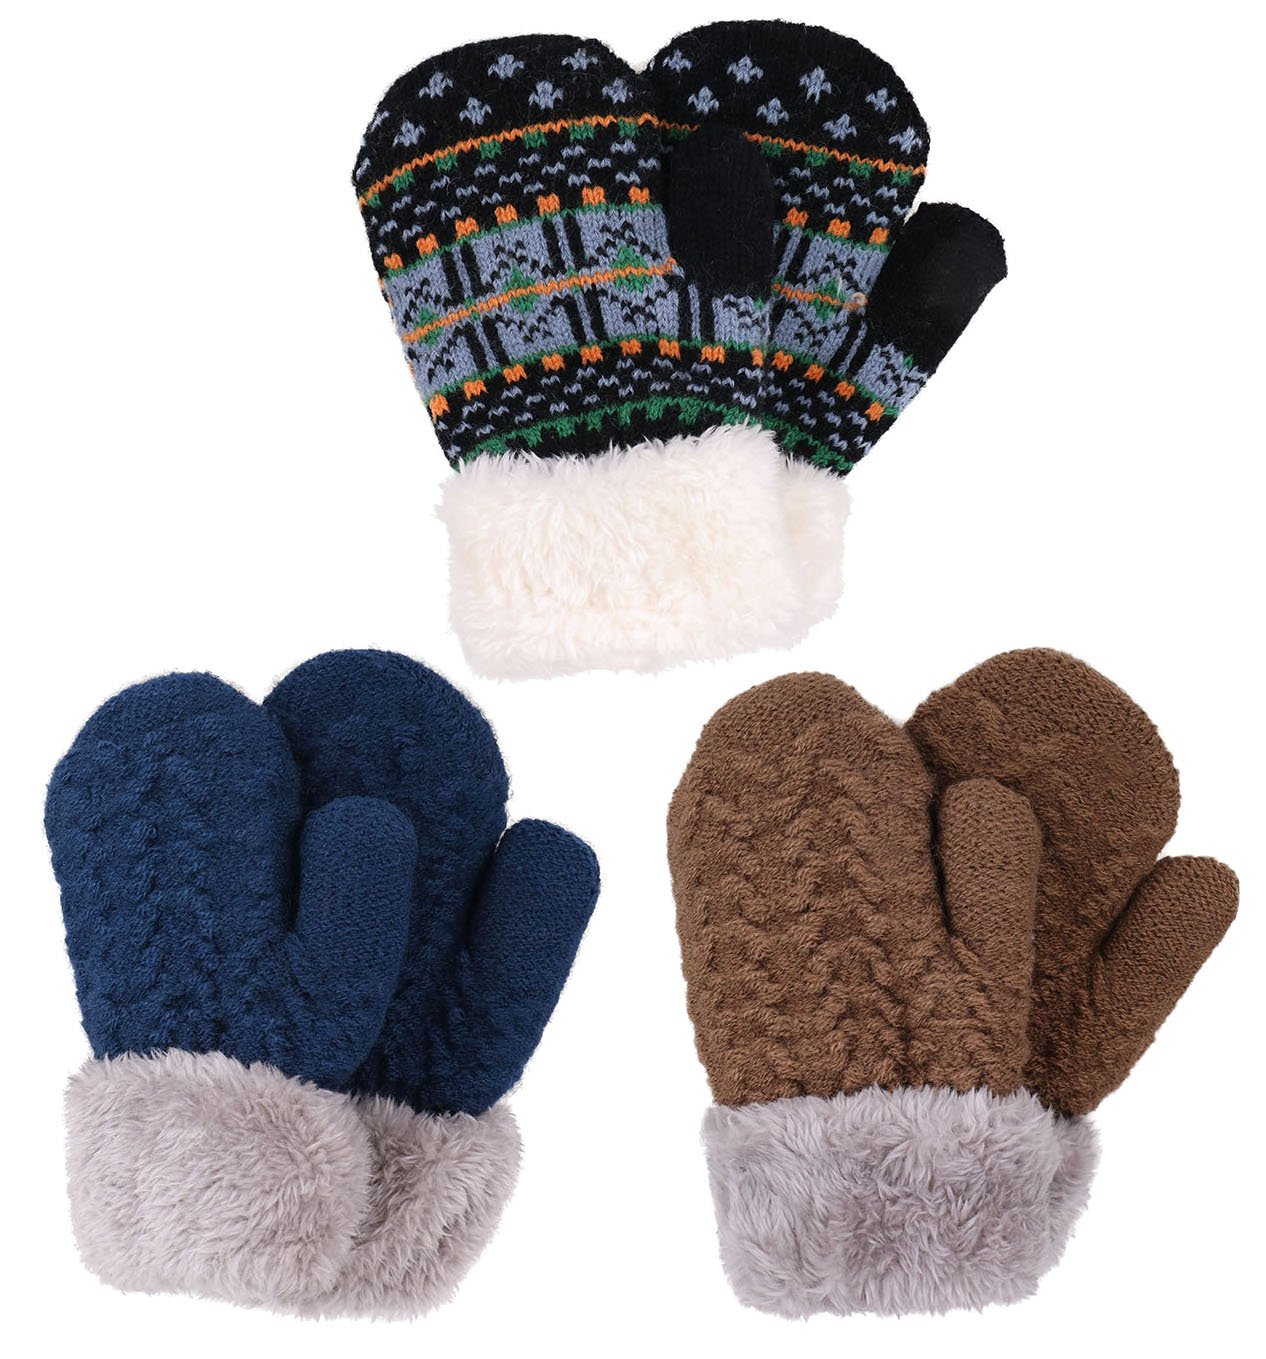 3 Pairs Boys Sherpa Lined Winter Knit Mittens, Mocha+Navy+Fair Isle/Black